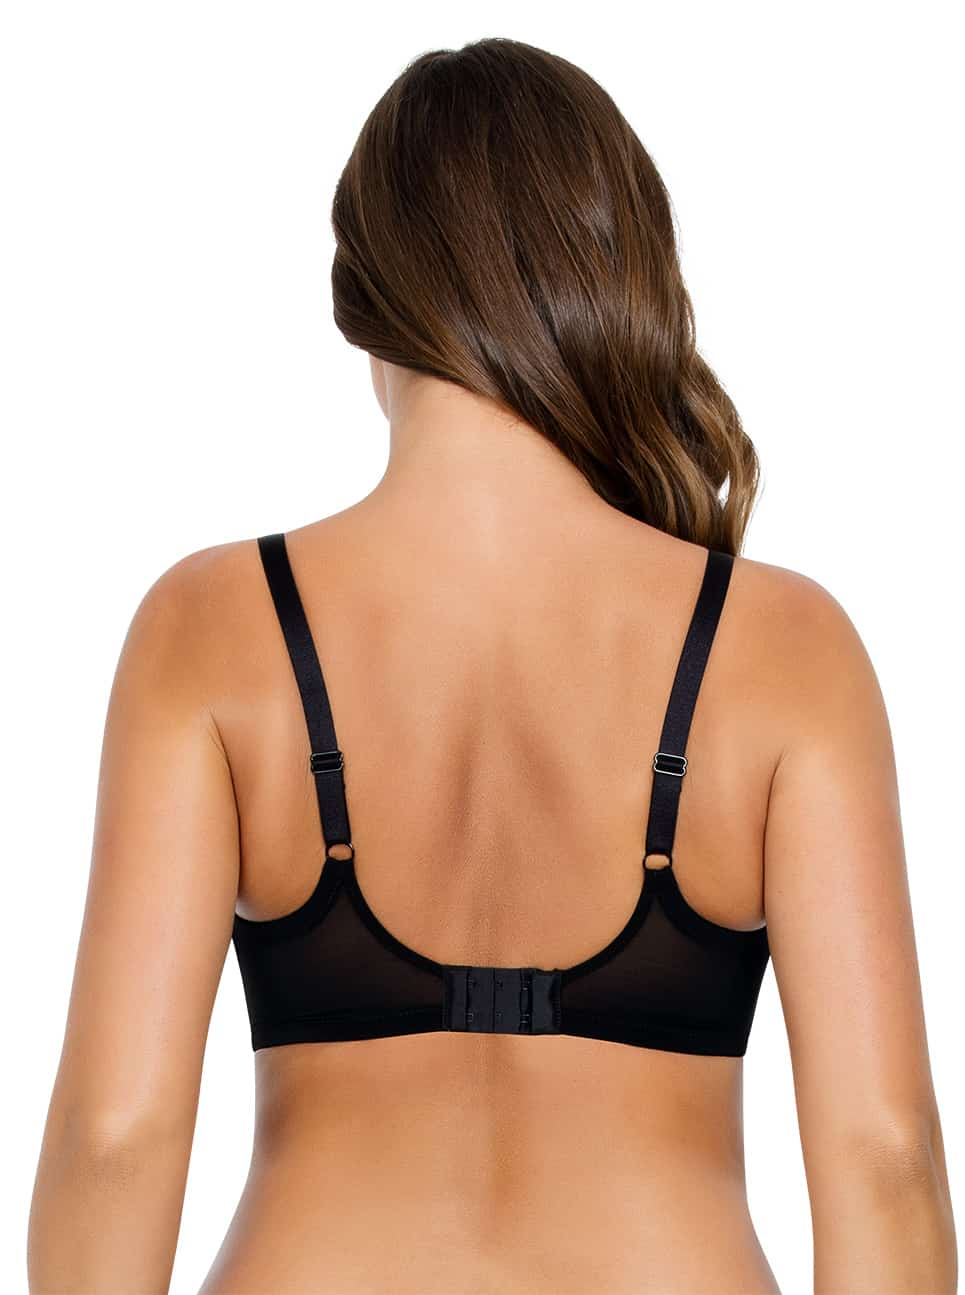 PARFAIT Lulu UnderwireBraP5612 BlackPewter Back copy - Lulu Underwire Bra - Black/Pewter - P5612